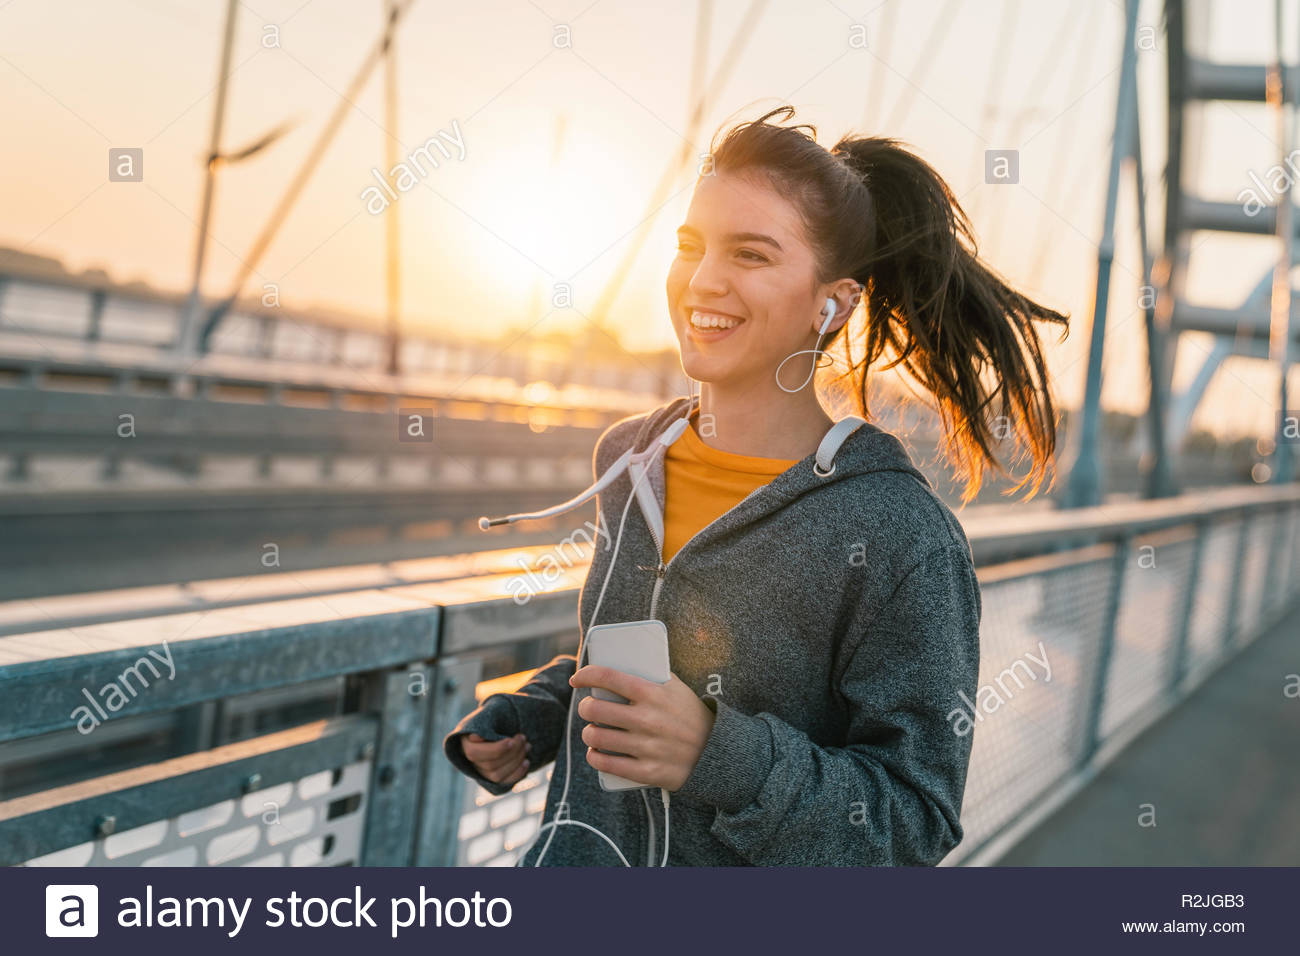 Attractive sportswoman smiling while listening to music and jogging on a bridge at sunrise. - Stock Image